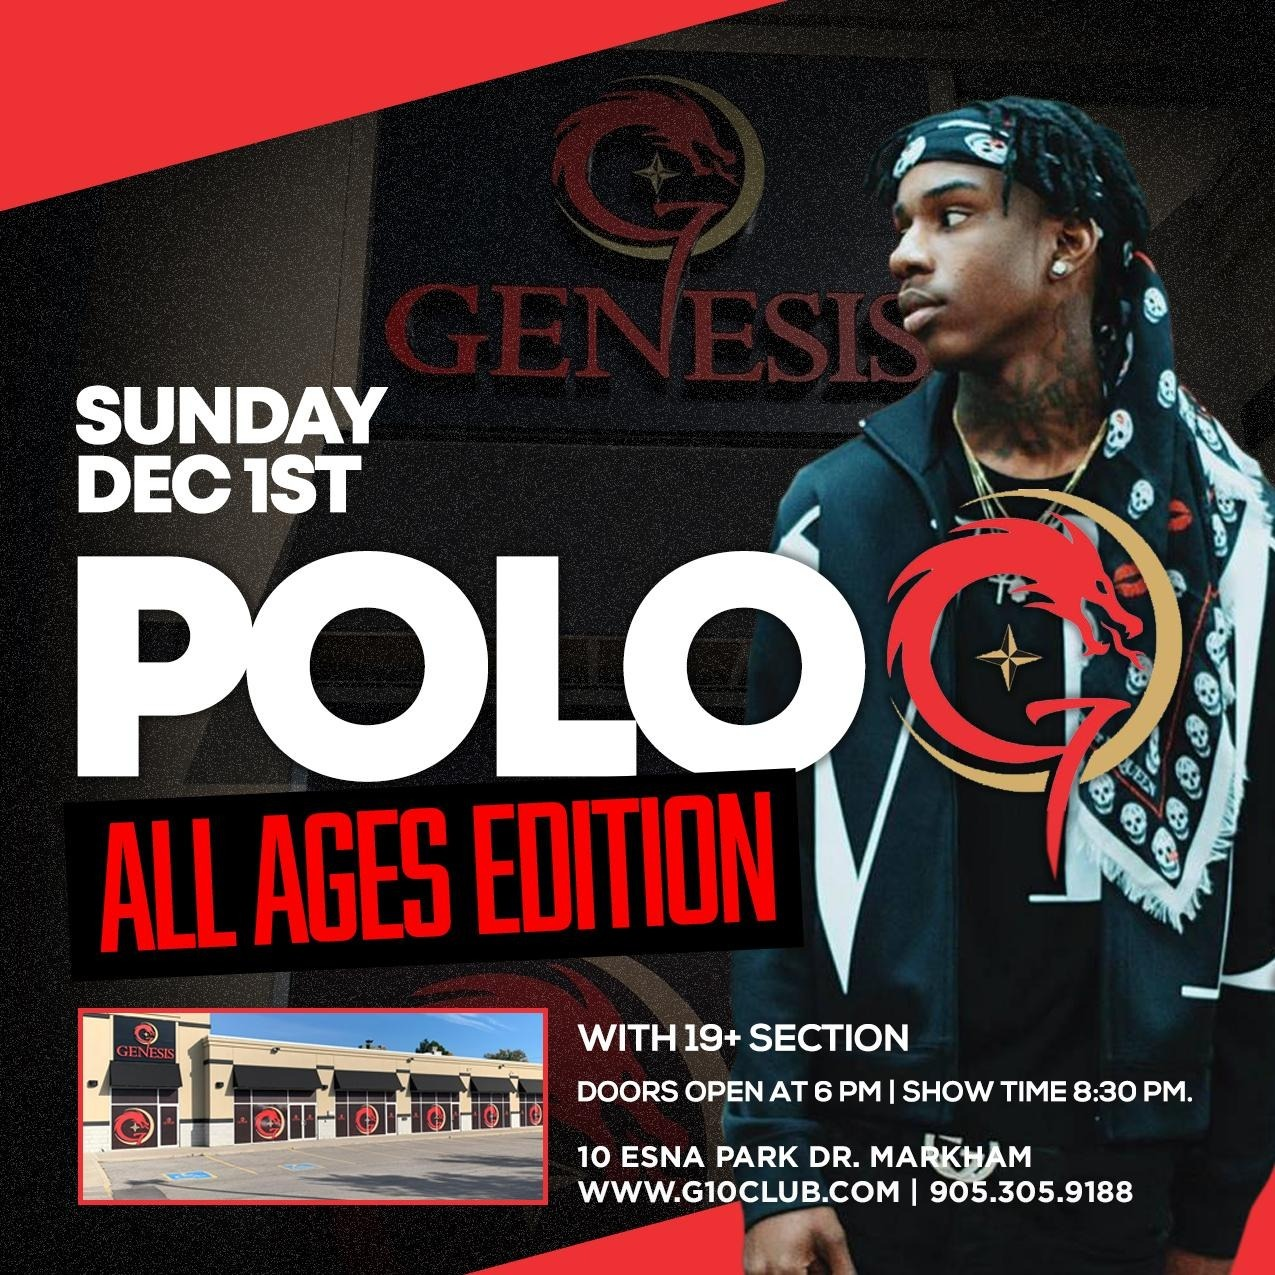 POLO G ALL AGES CONCERT